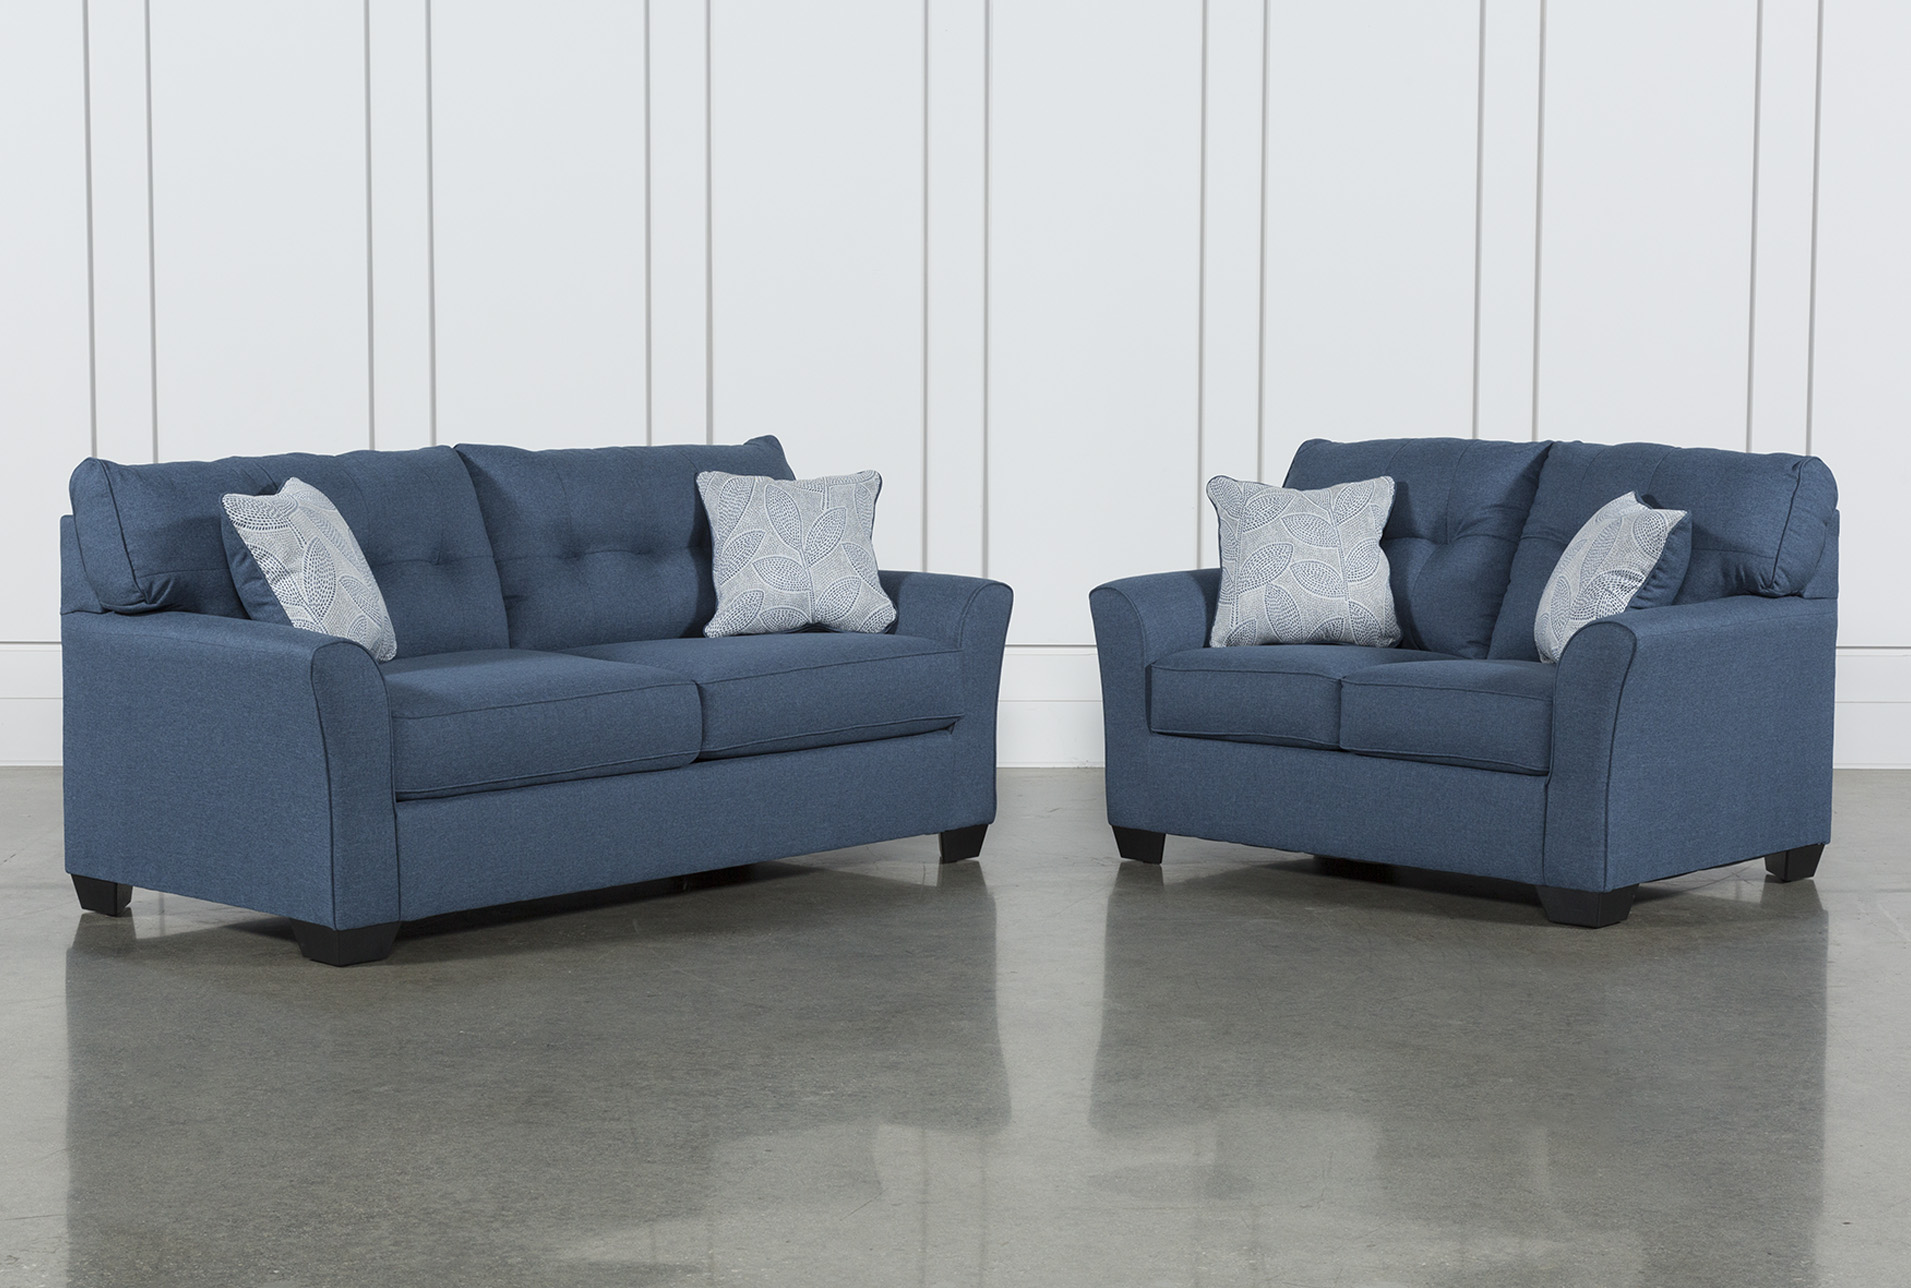 Delicieux Jacoby Denim 2 Piece Living Room Set (Qty: 1) Has Been Successfully Added  To Your Cart.